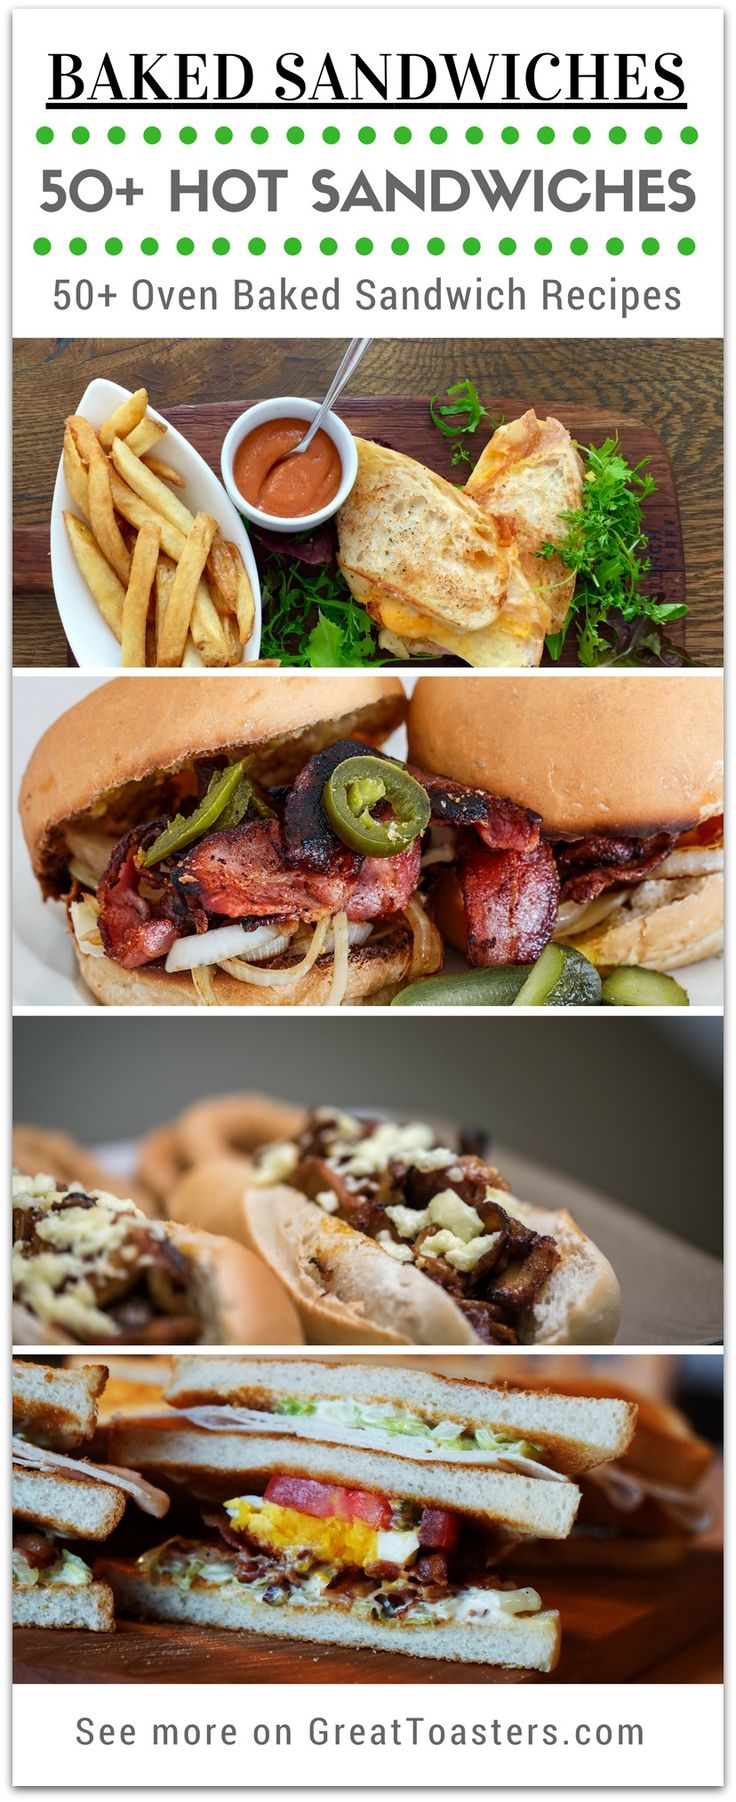 50+ Toaster Oven Sandwich Recipes. These 50+ baked sandwiches are easy to make for a crowd or family. Here are 50+ recipes for breakfast, lunch, & dinner